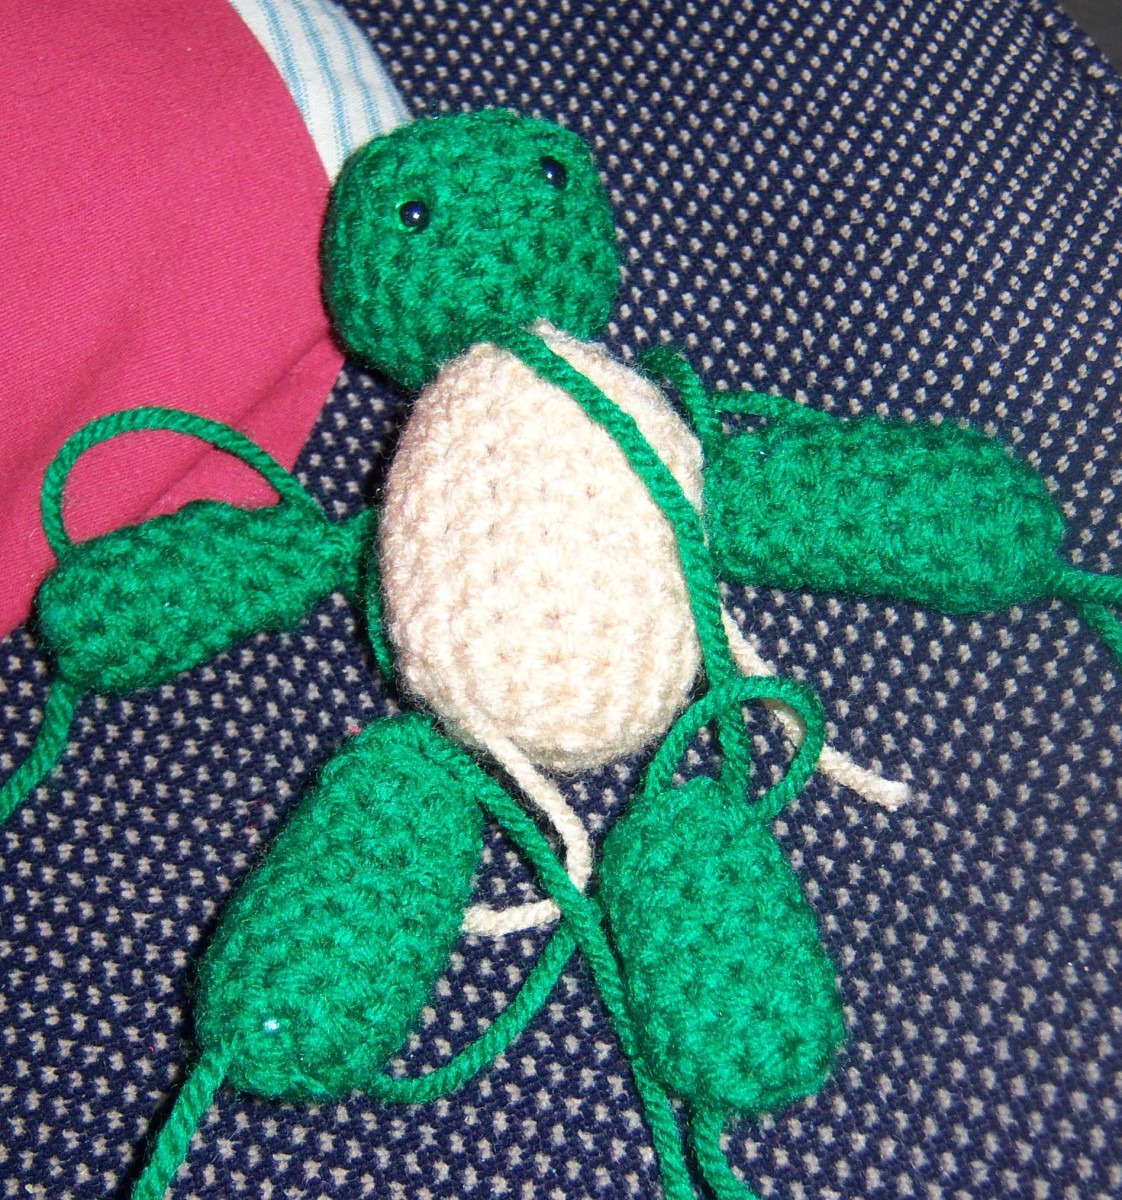 All this turtle needs is a shell. It could also probably need some sewing together.